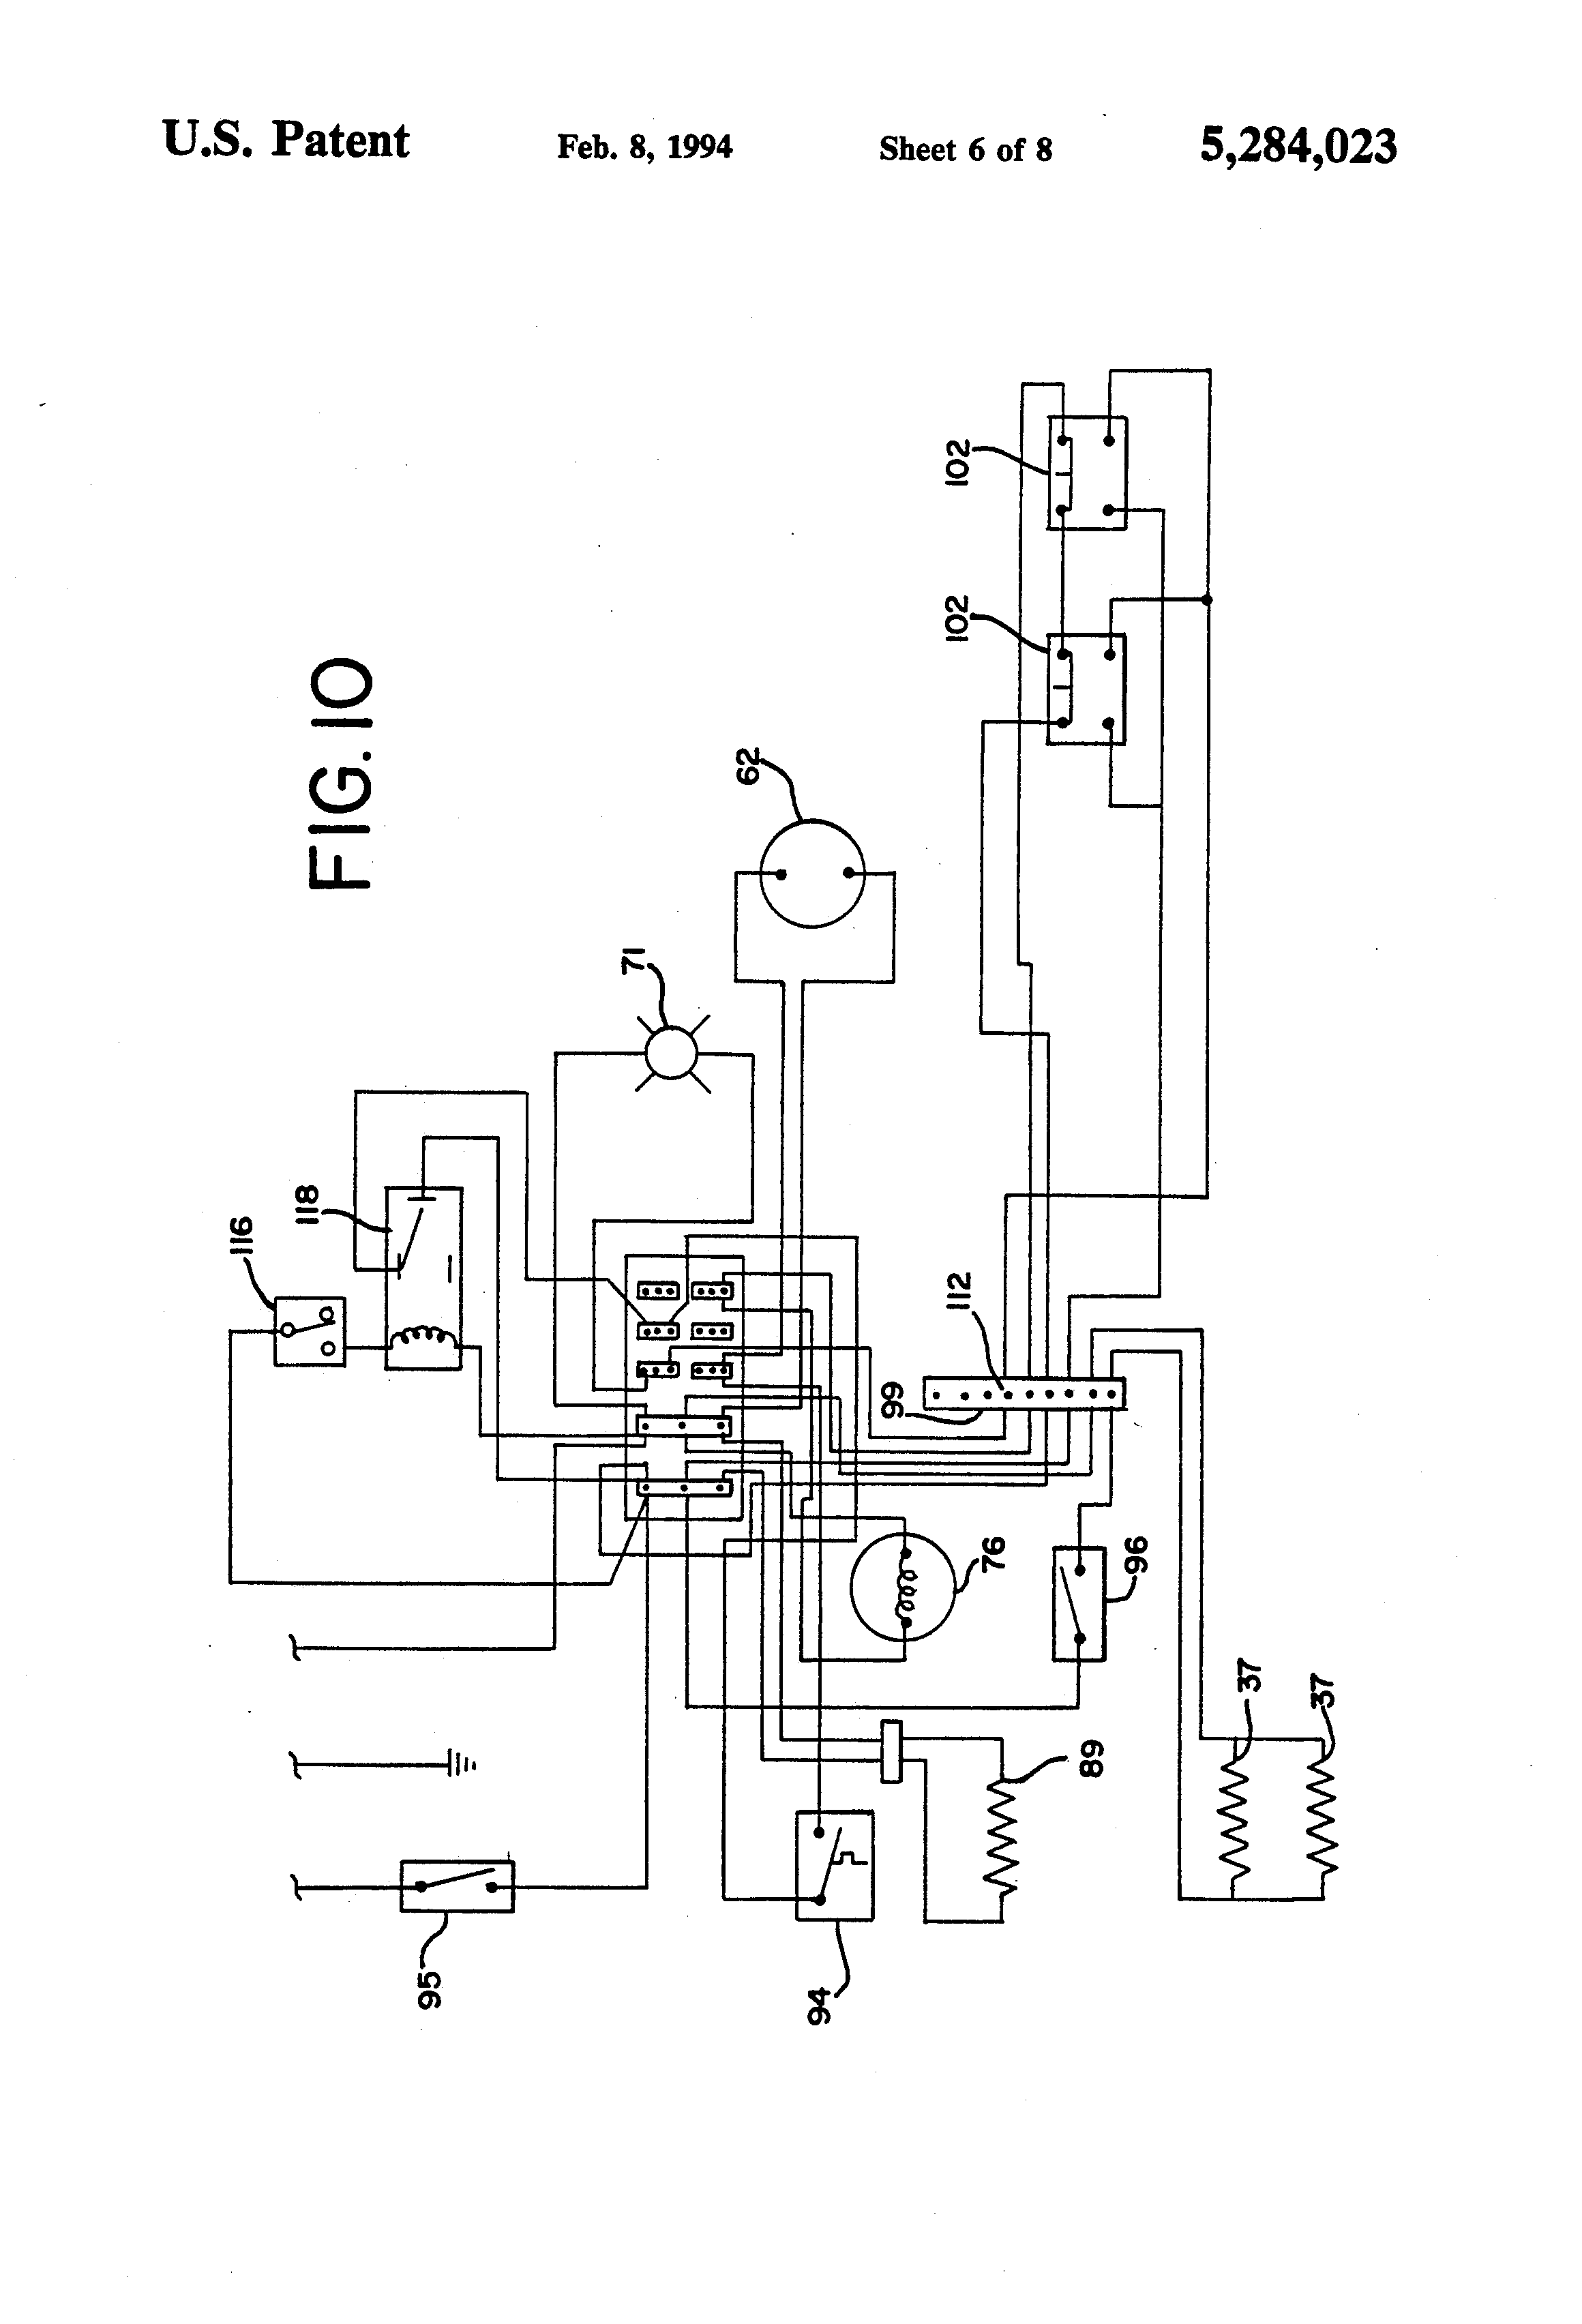 bohn evaporator wiring diagram   30 wiring diagram images